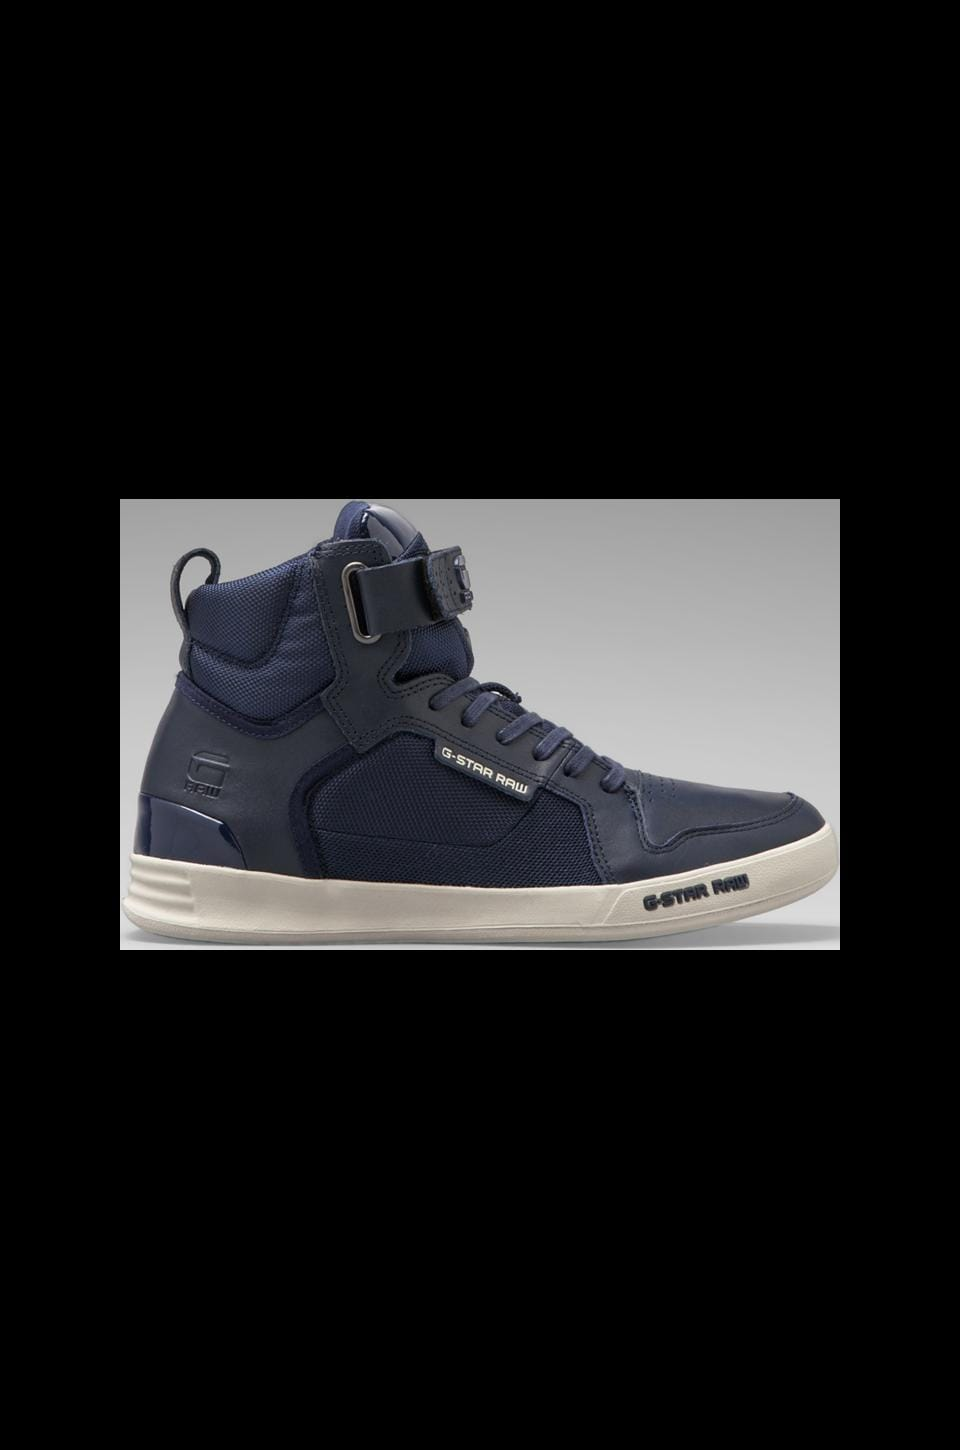 G-Star Yard Bullion in Navy Leather & Textile